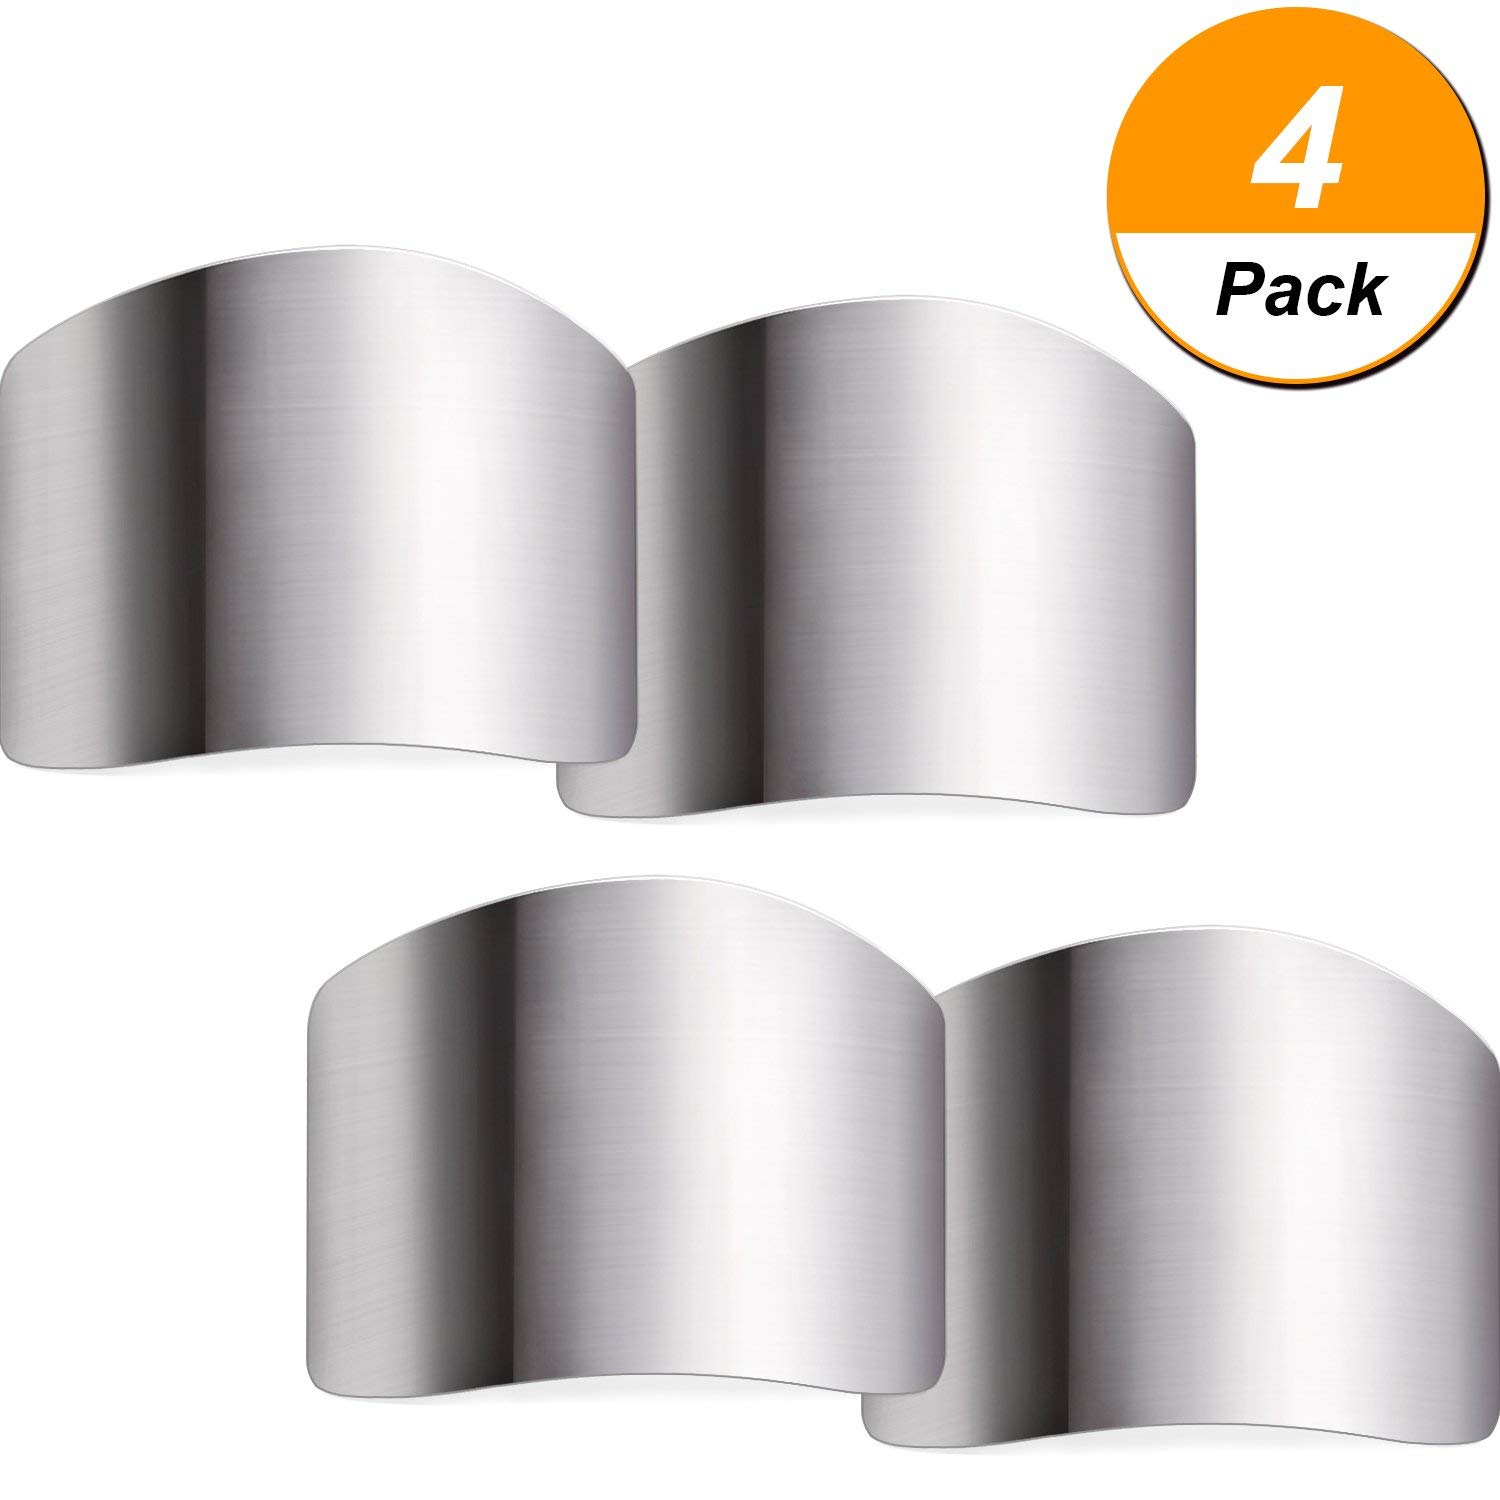 TecUnite 4 Pack Stainless Steel Finger Guard Finger Protector Safe Knives Guard Chop Safe Slice Kitchen Tool For Dicing and Slicing in Kitchens